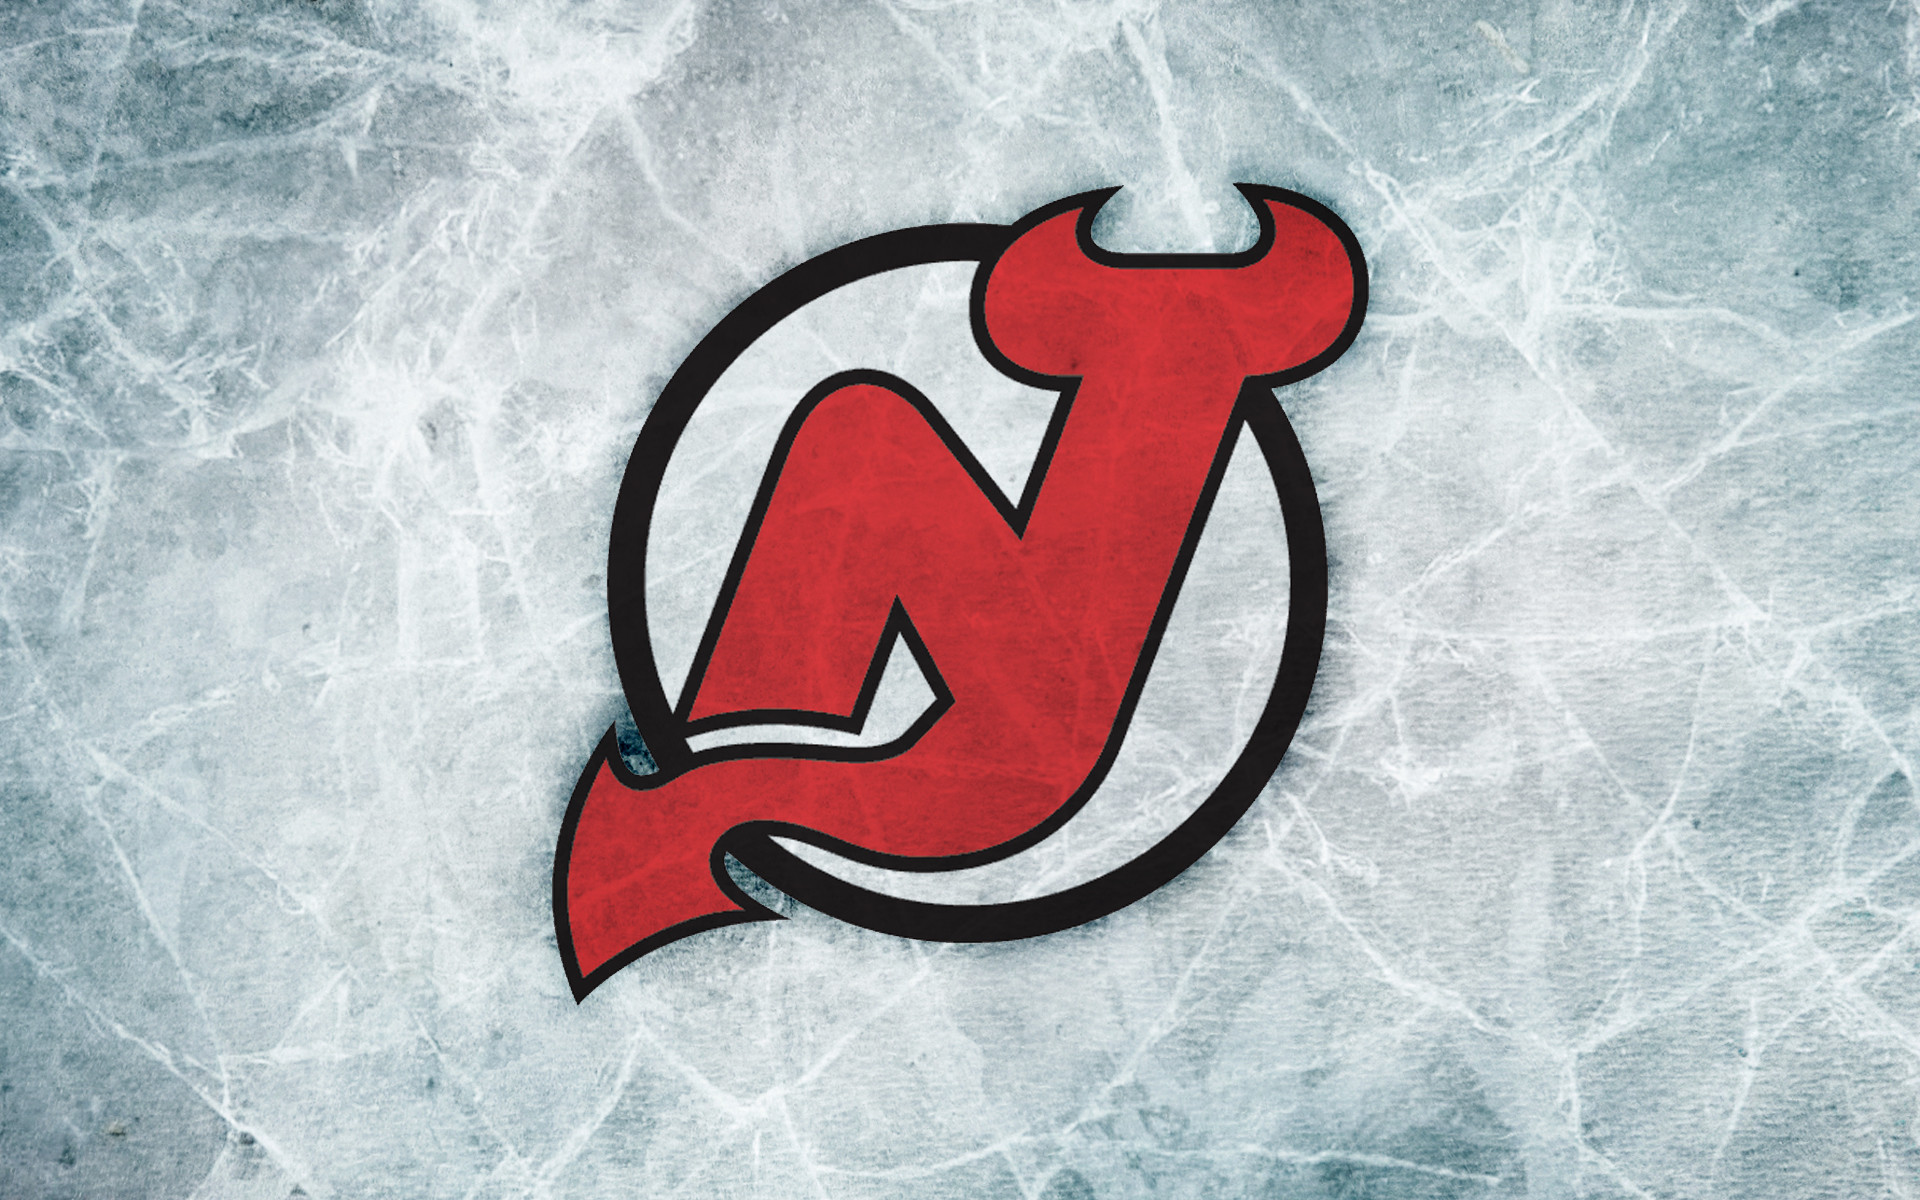 new jersey devils wallpapers ·①